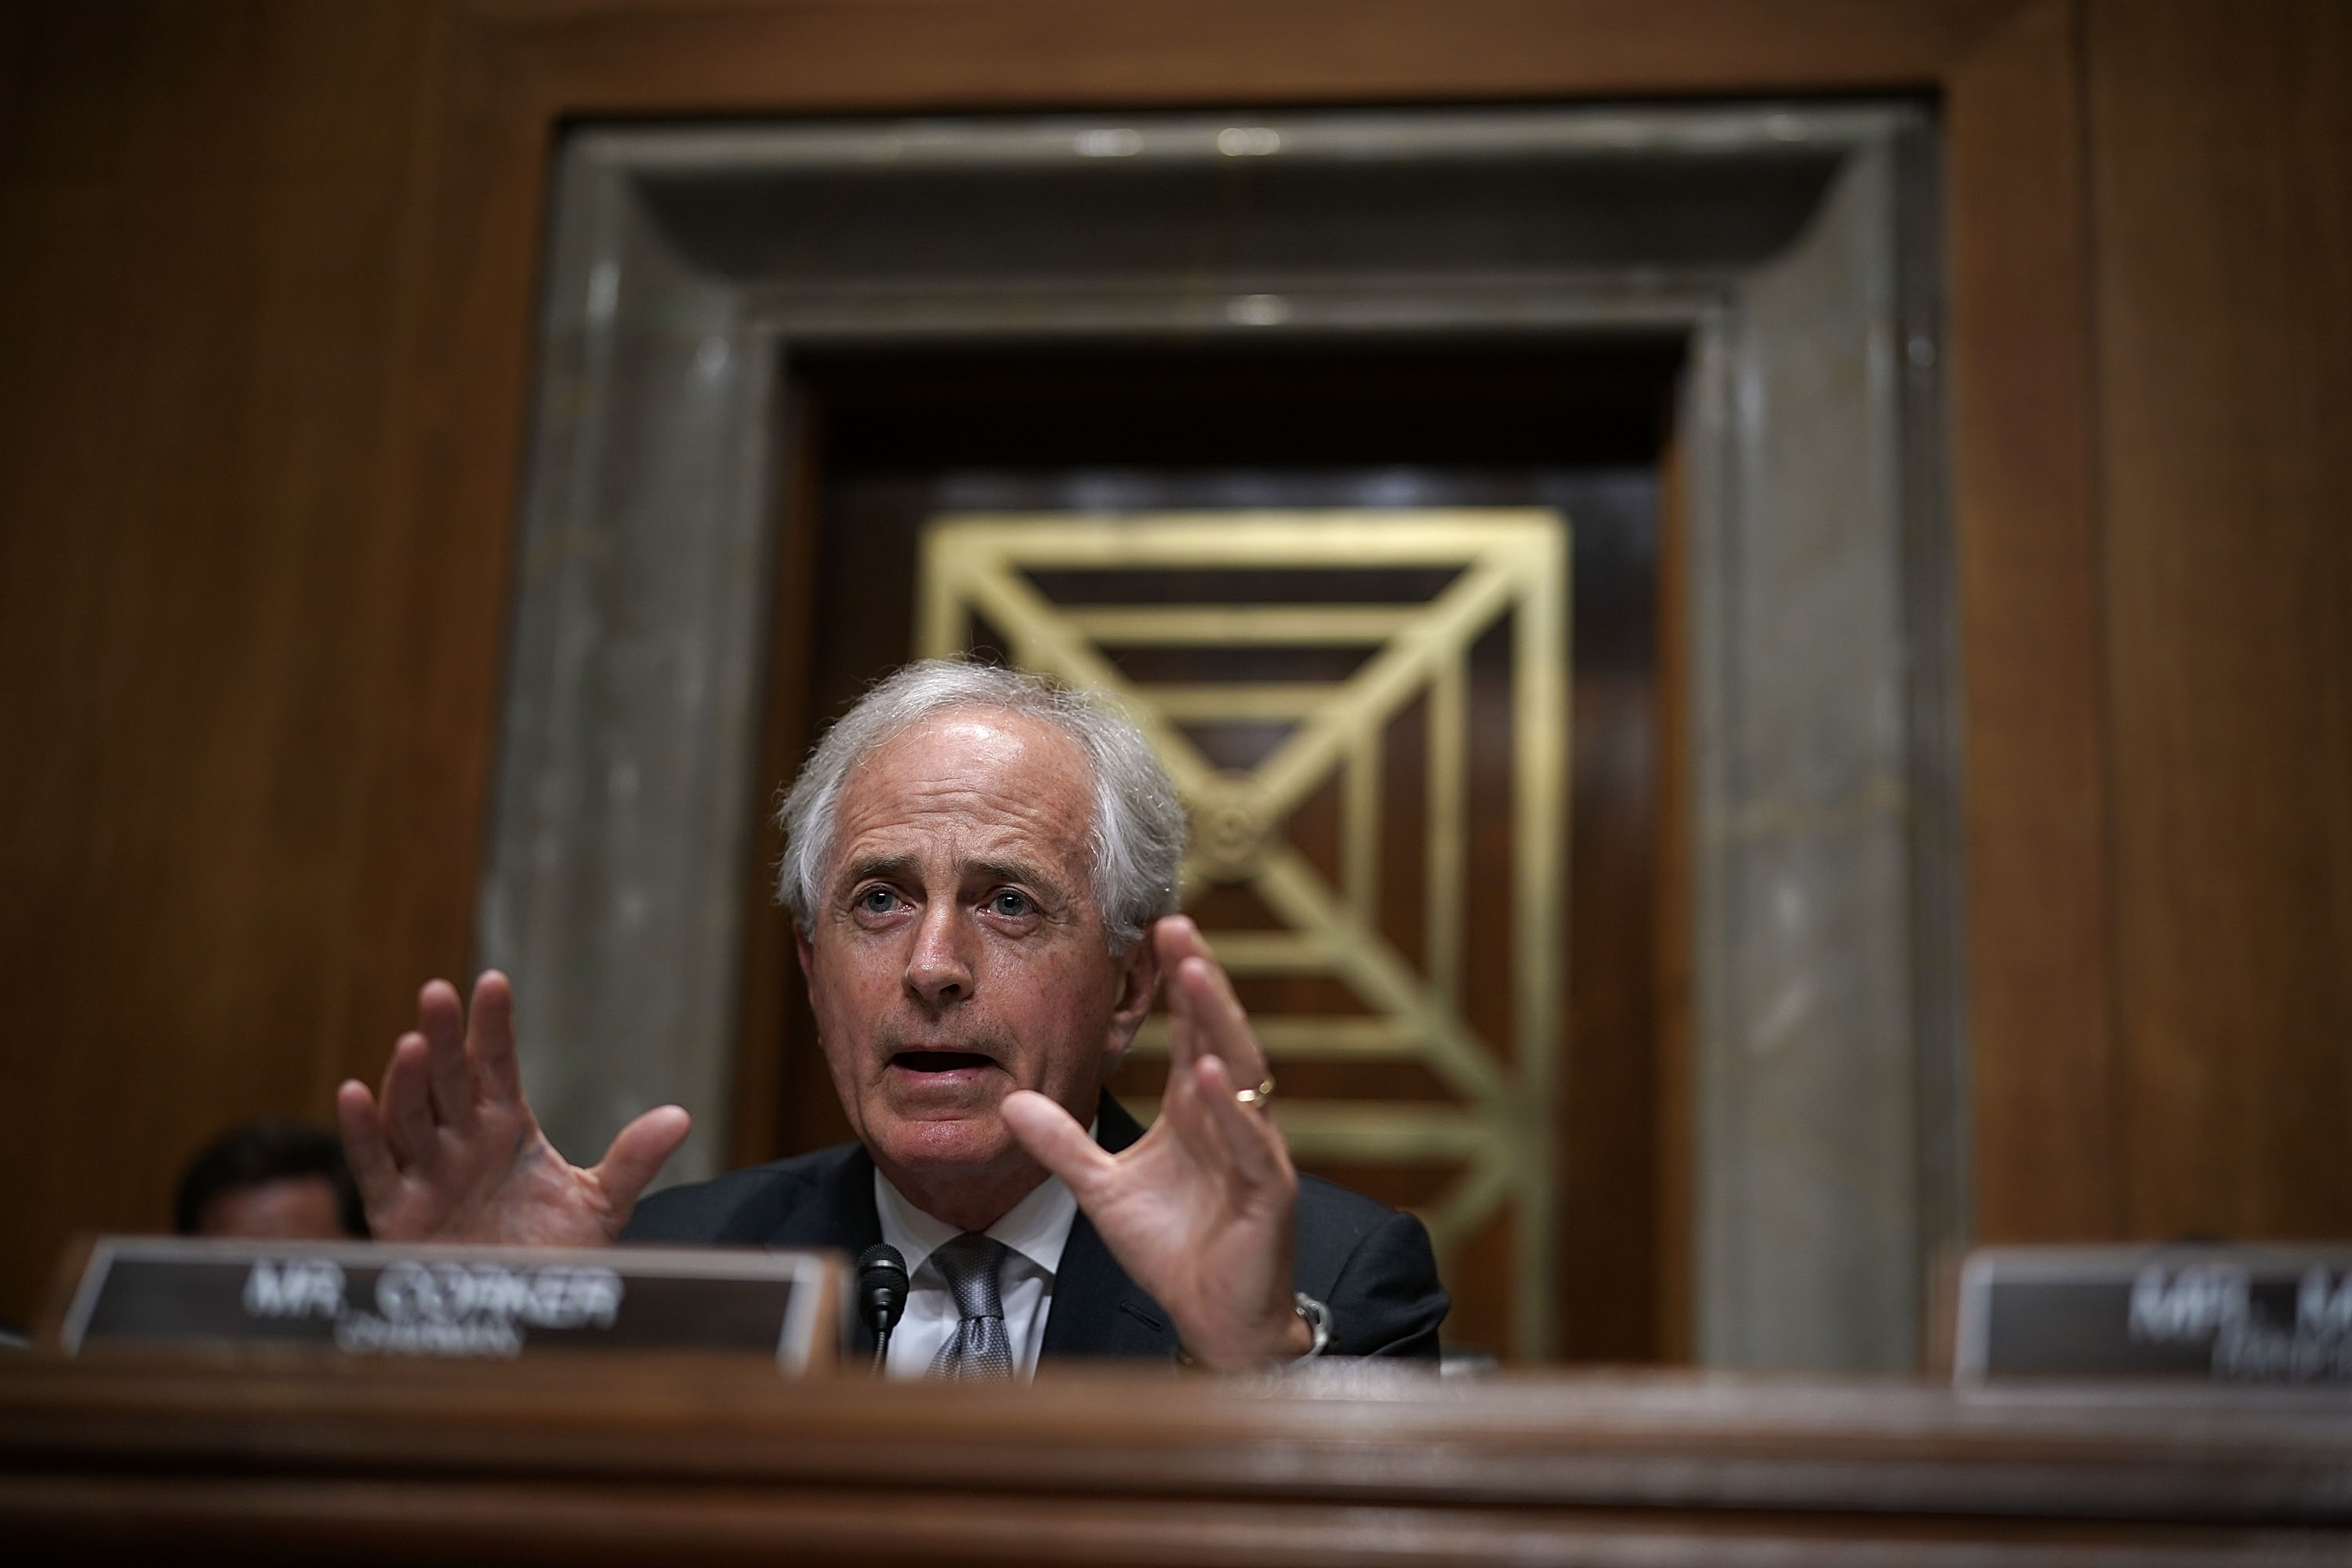 Committee chairman U.S. Sen. Bob Corker (R-TN) speaks during a hearing before Senate Foreign Relations Committee July 25, 2018 on Capitol Hill in Washington.